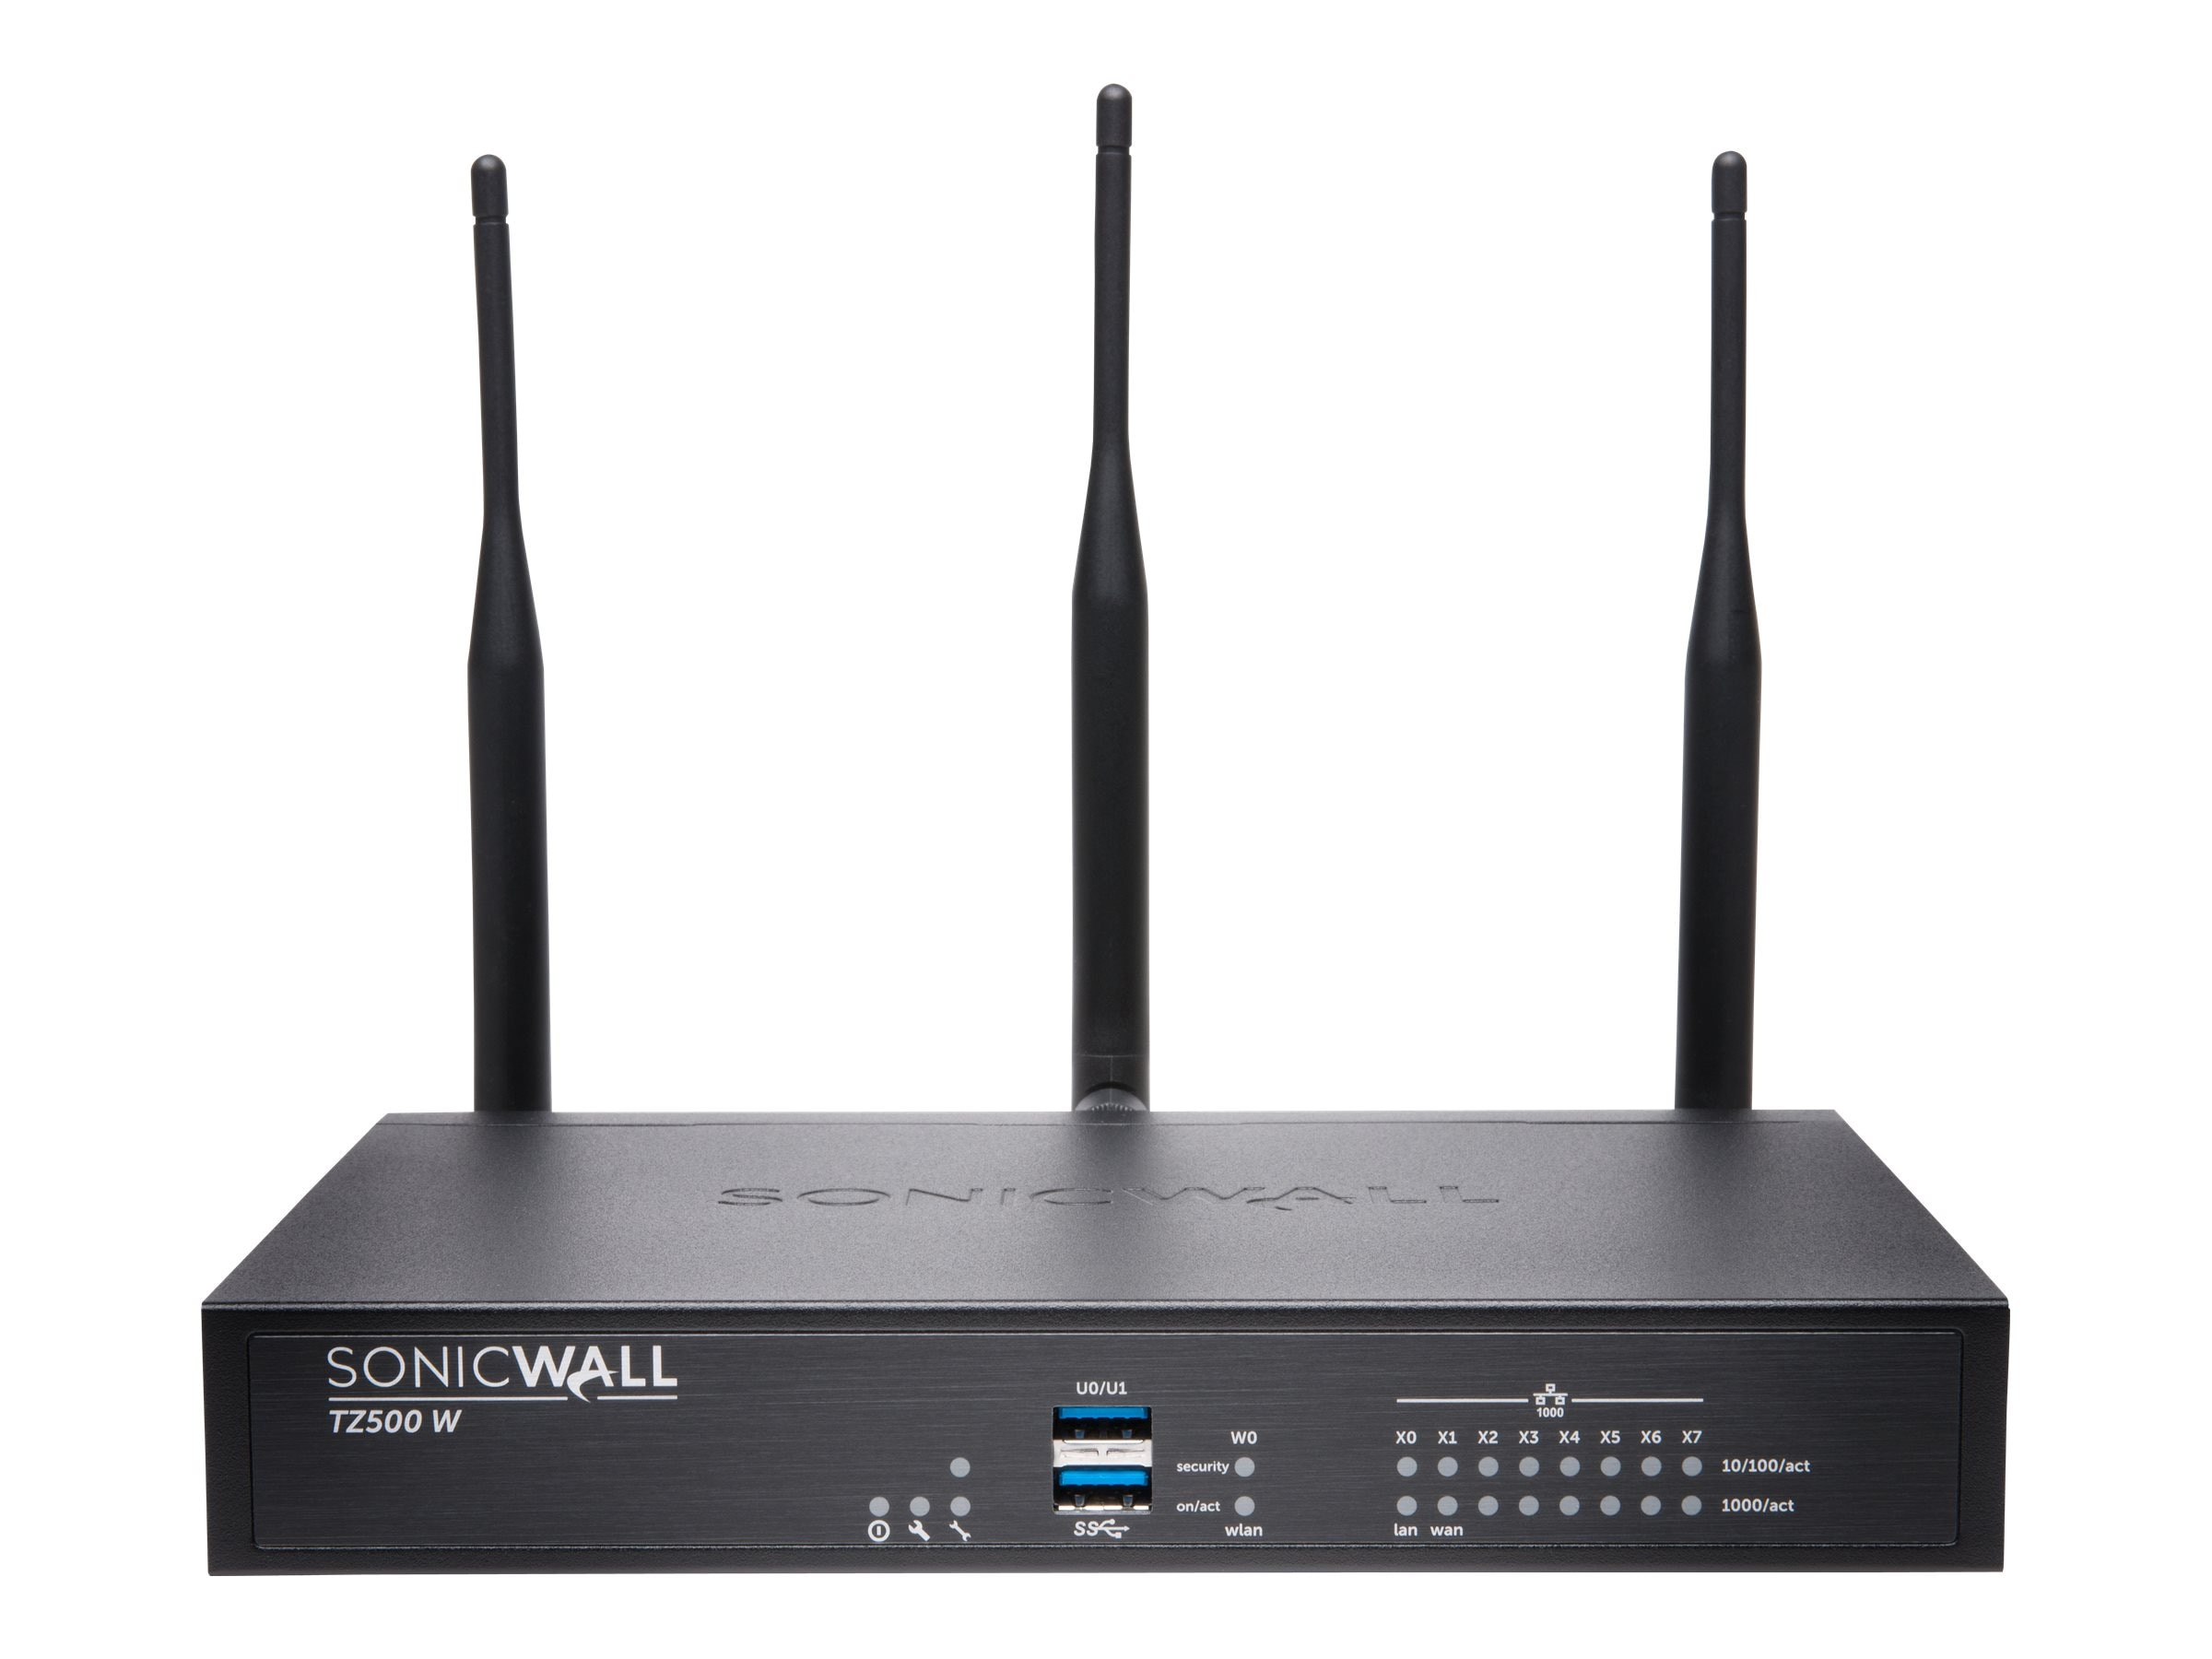 SonicWALL 01-SSC-1709 Image 2